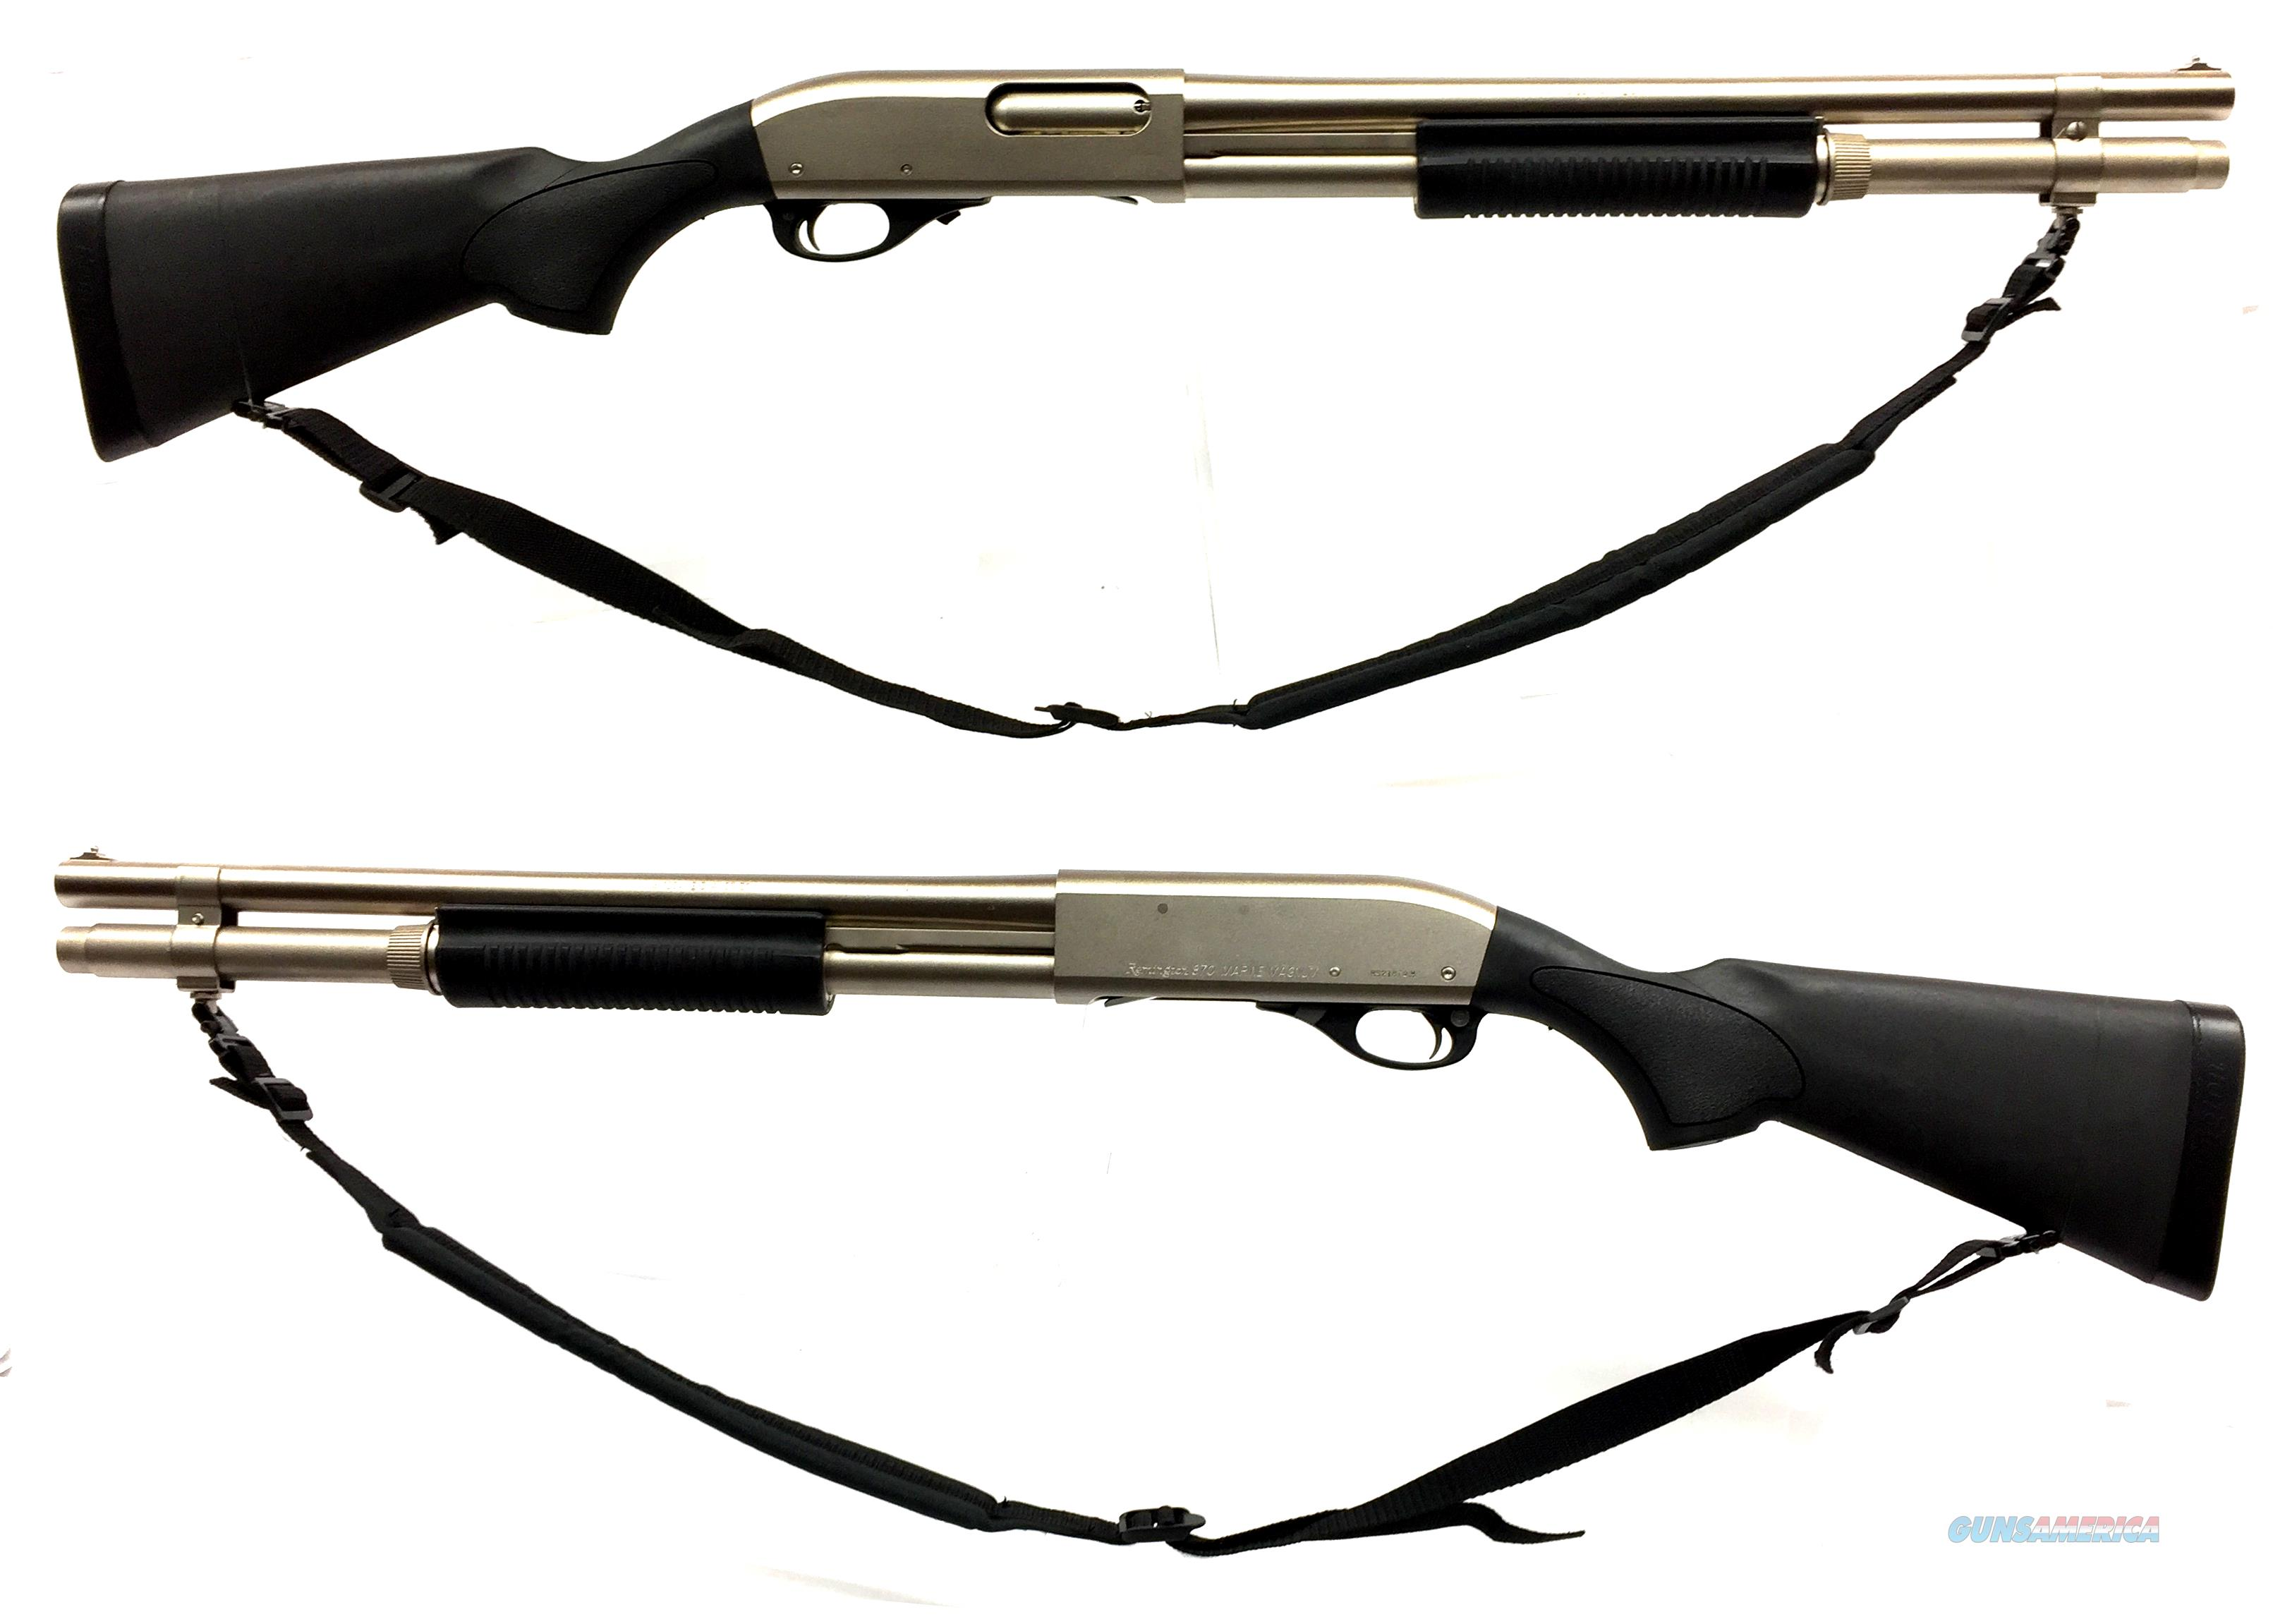 Remington 870 Marine Magnum 12GA Pump-Action Shotgun  Guns > Shotguns > Remington Shotguns  > Pump > Tactical